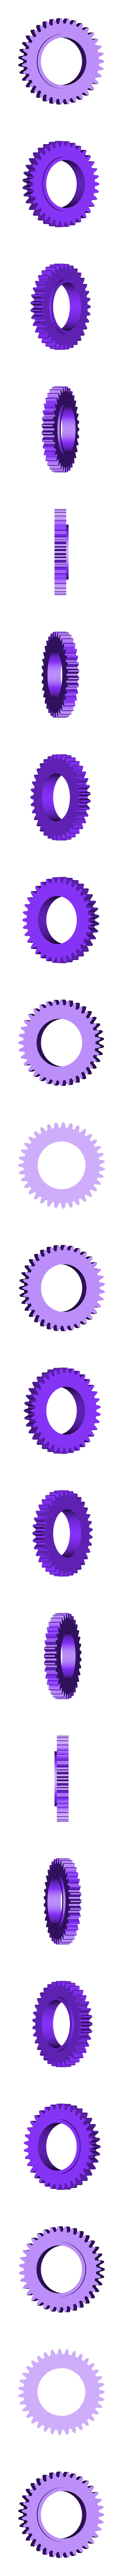 Gear35-20-5-01.stl Download free STL file Main Gear Box, Helicopter driven by 2-Engines • Object to 3D print, konchan77